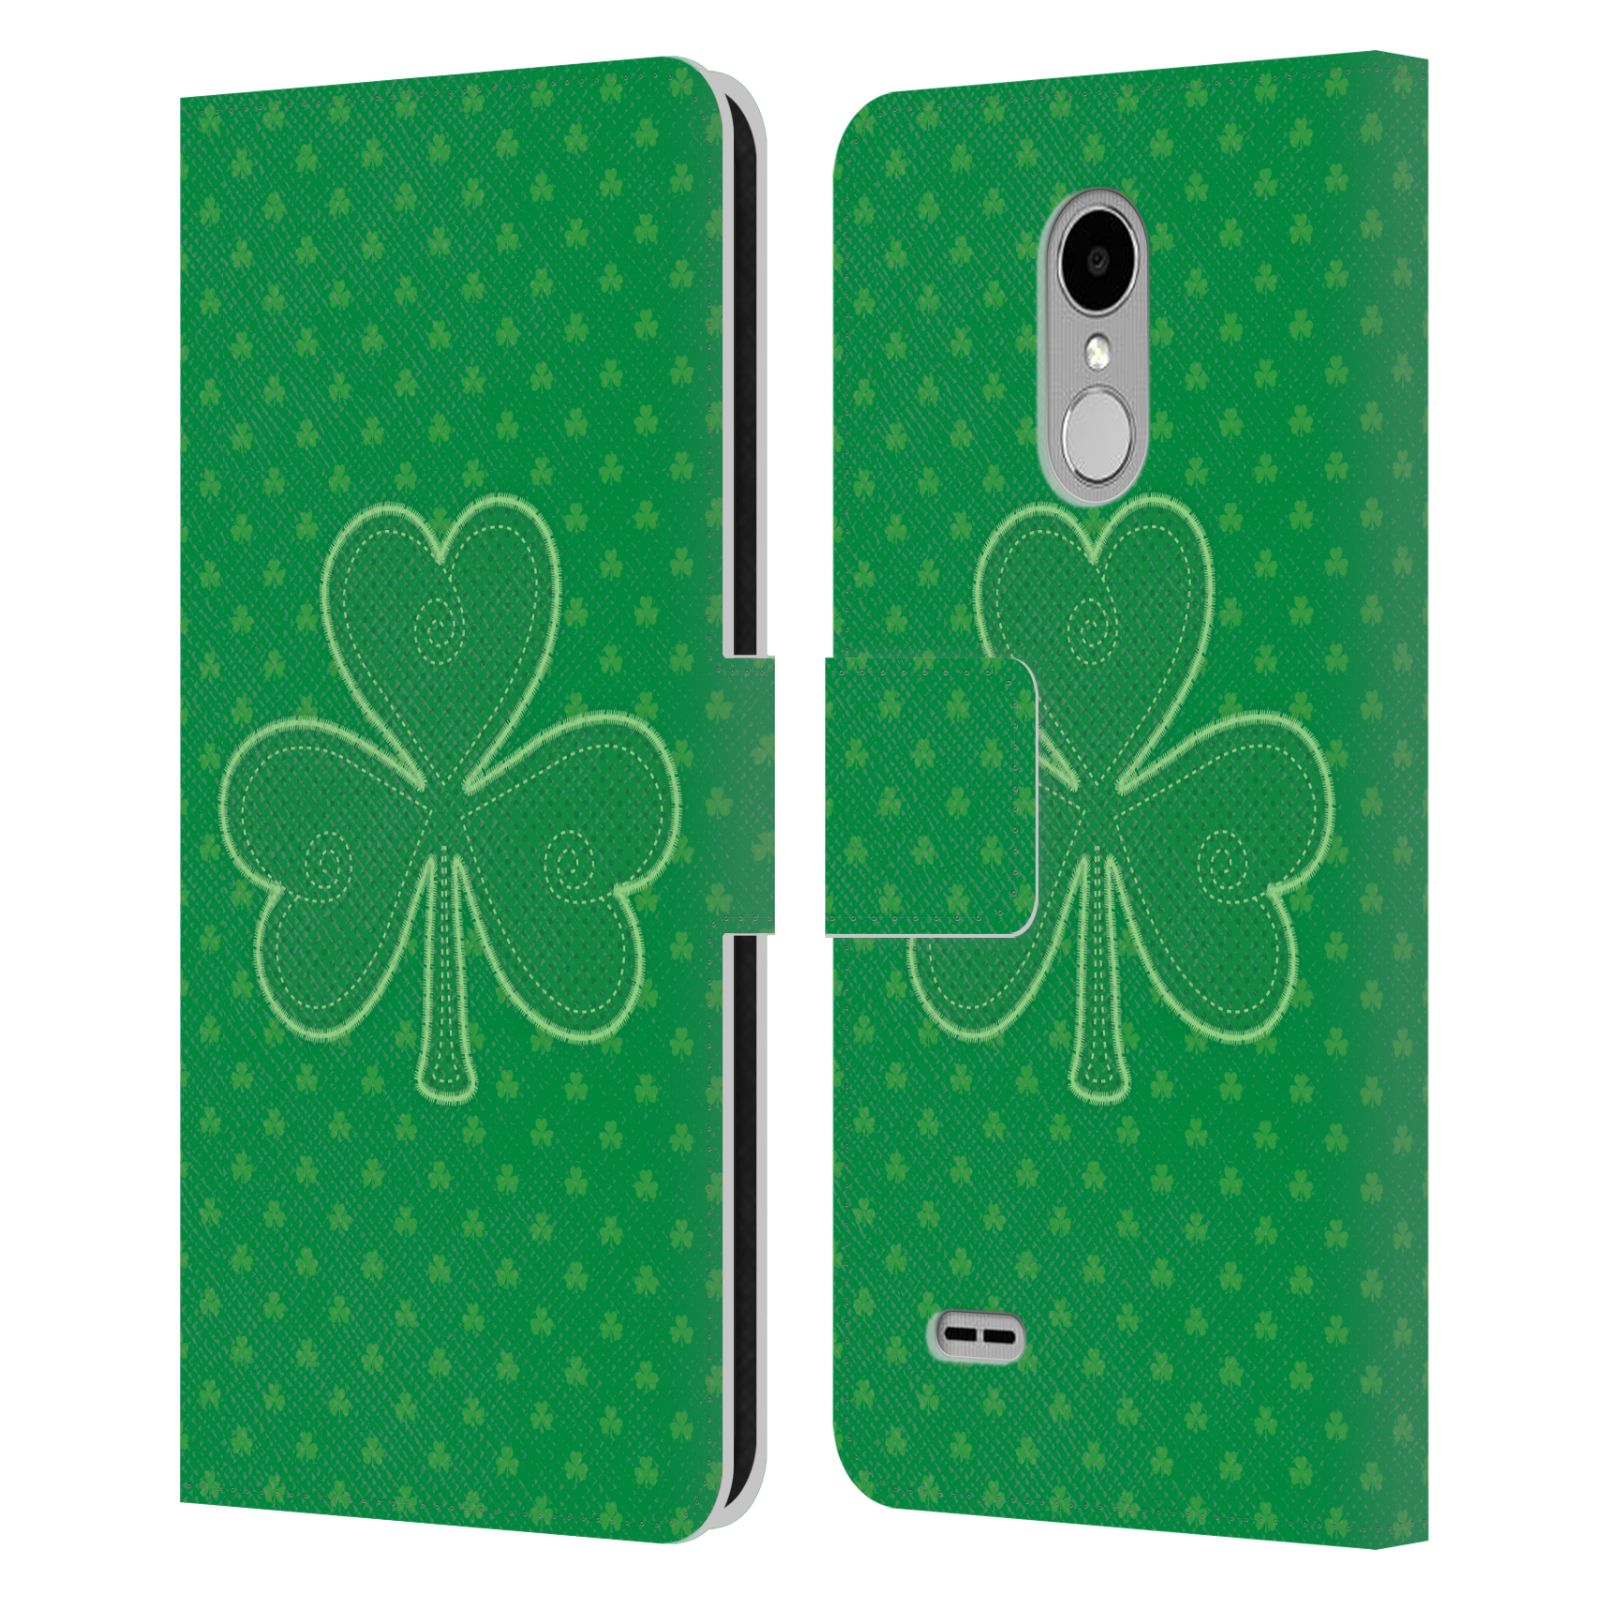 HEAD-CASE-DESIGNS-SHAMROCK-PATTERNS-LEATHER-BOOK-CASE-FOR-LG-STYLUS-3-K10-PRO